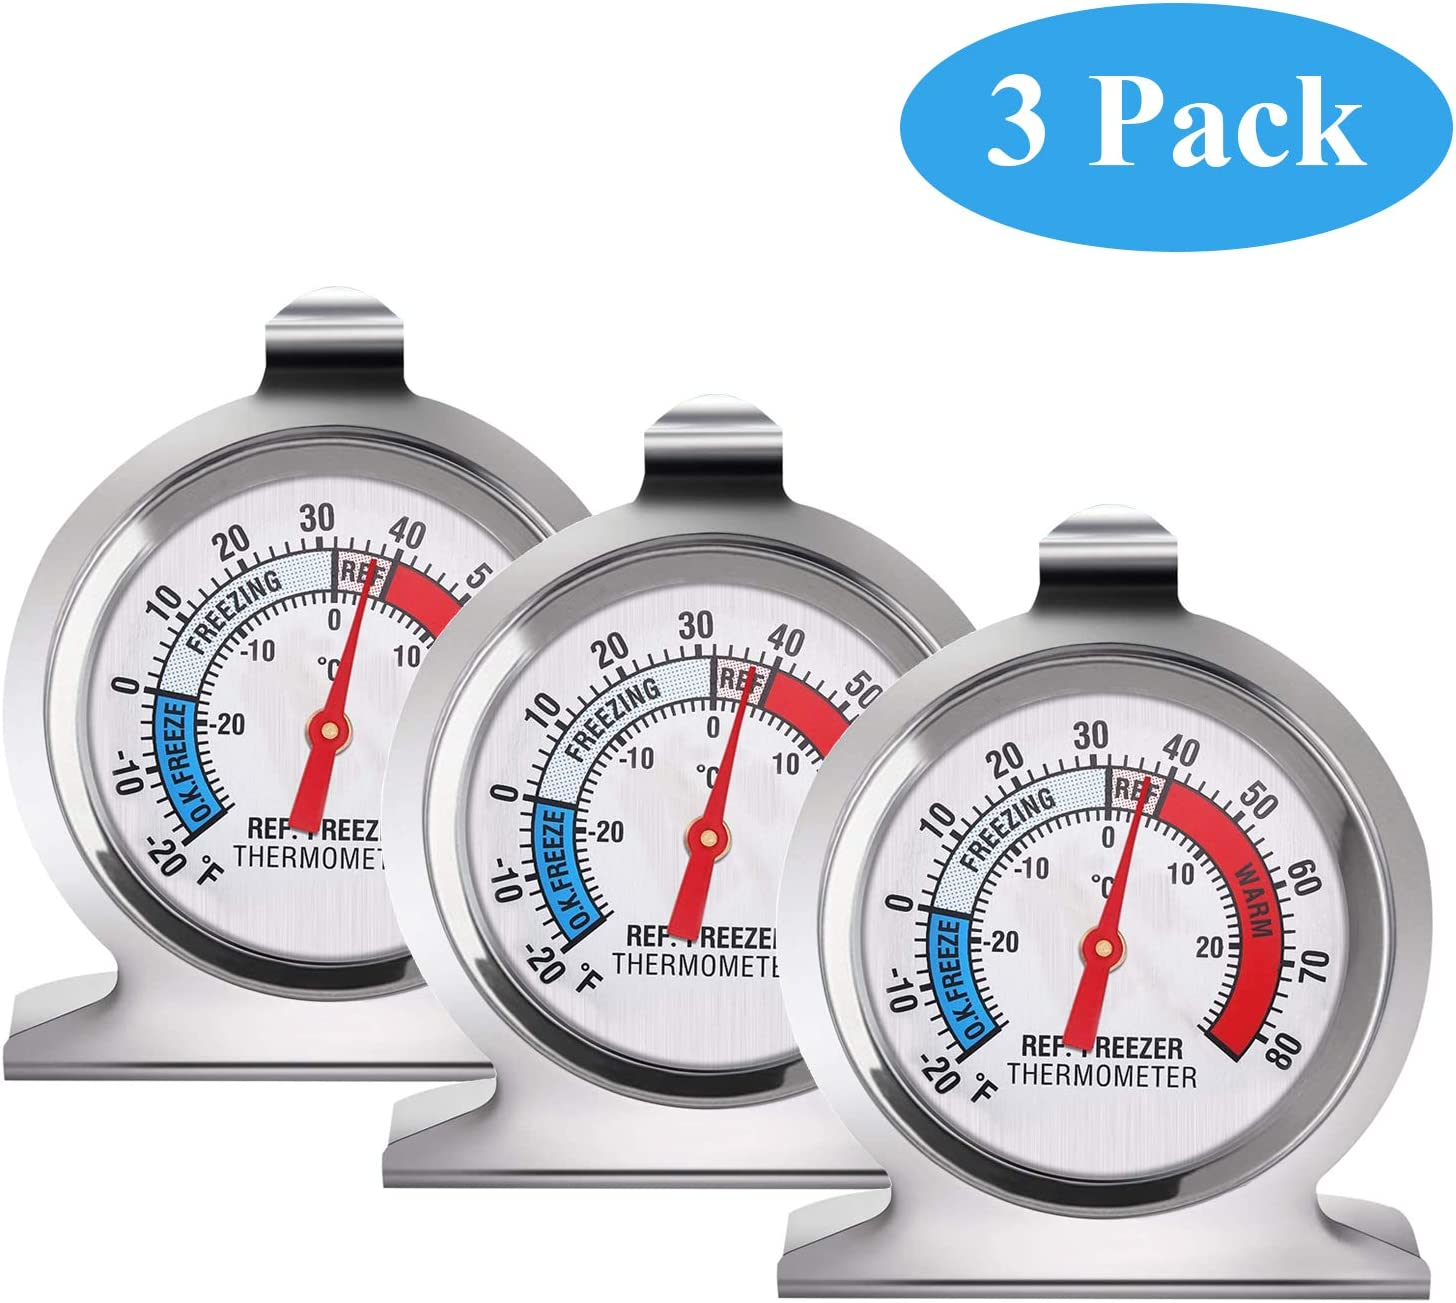 SLKIJDHFB Refrigerator Thermometer Classic Fridge Thermometer Large Dial with Red Indicator Thermometer for Freezer Refrigerator Cooler 3 Pack